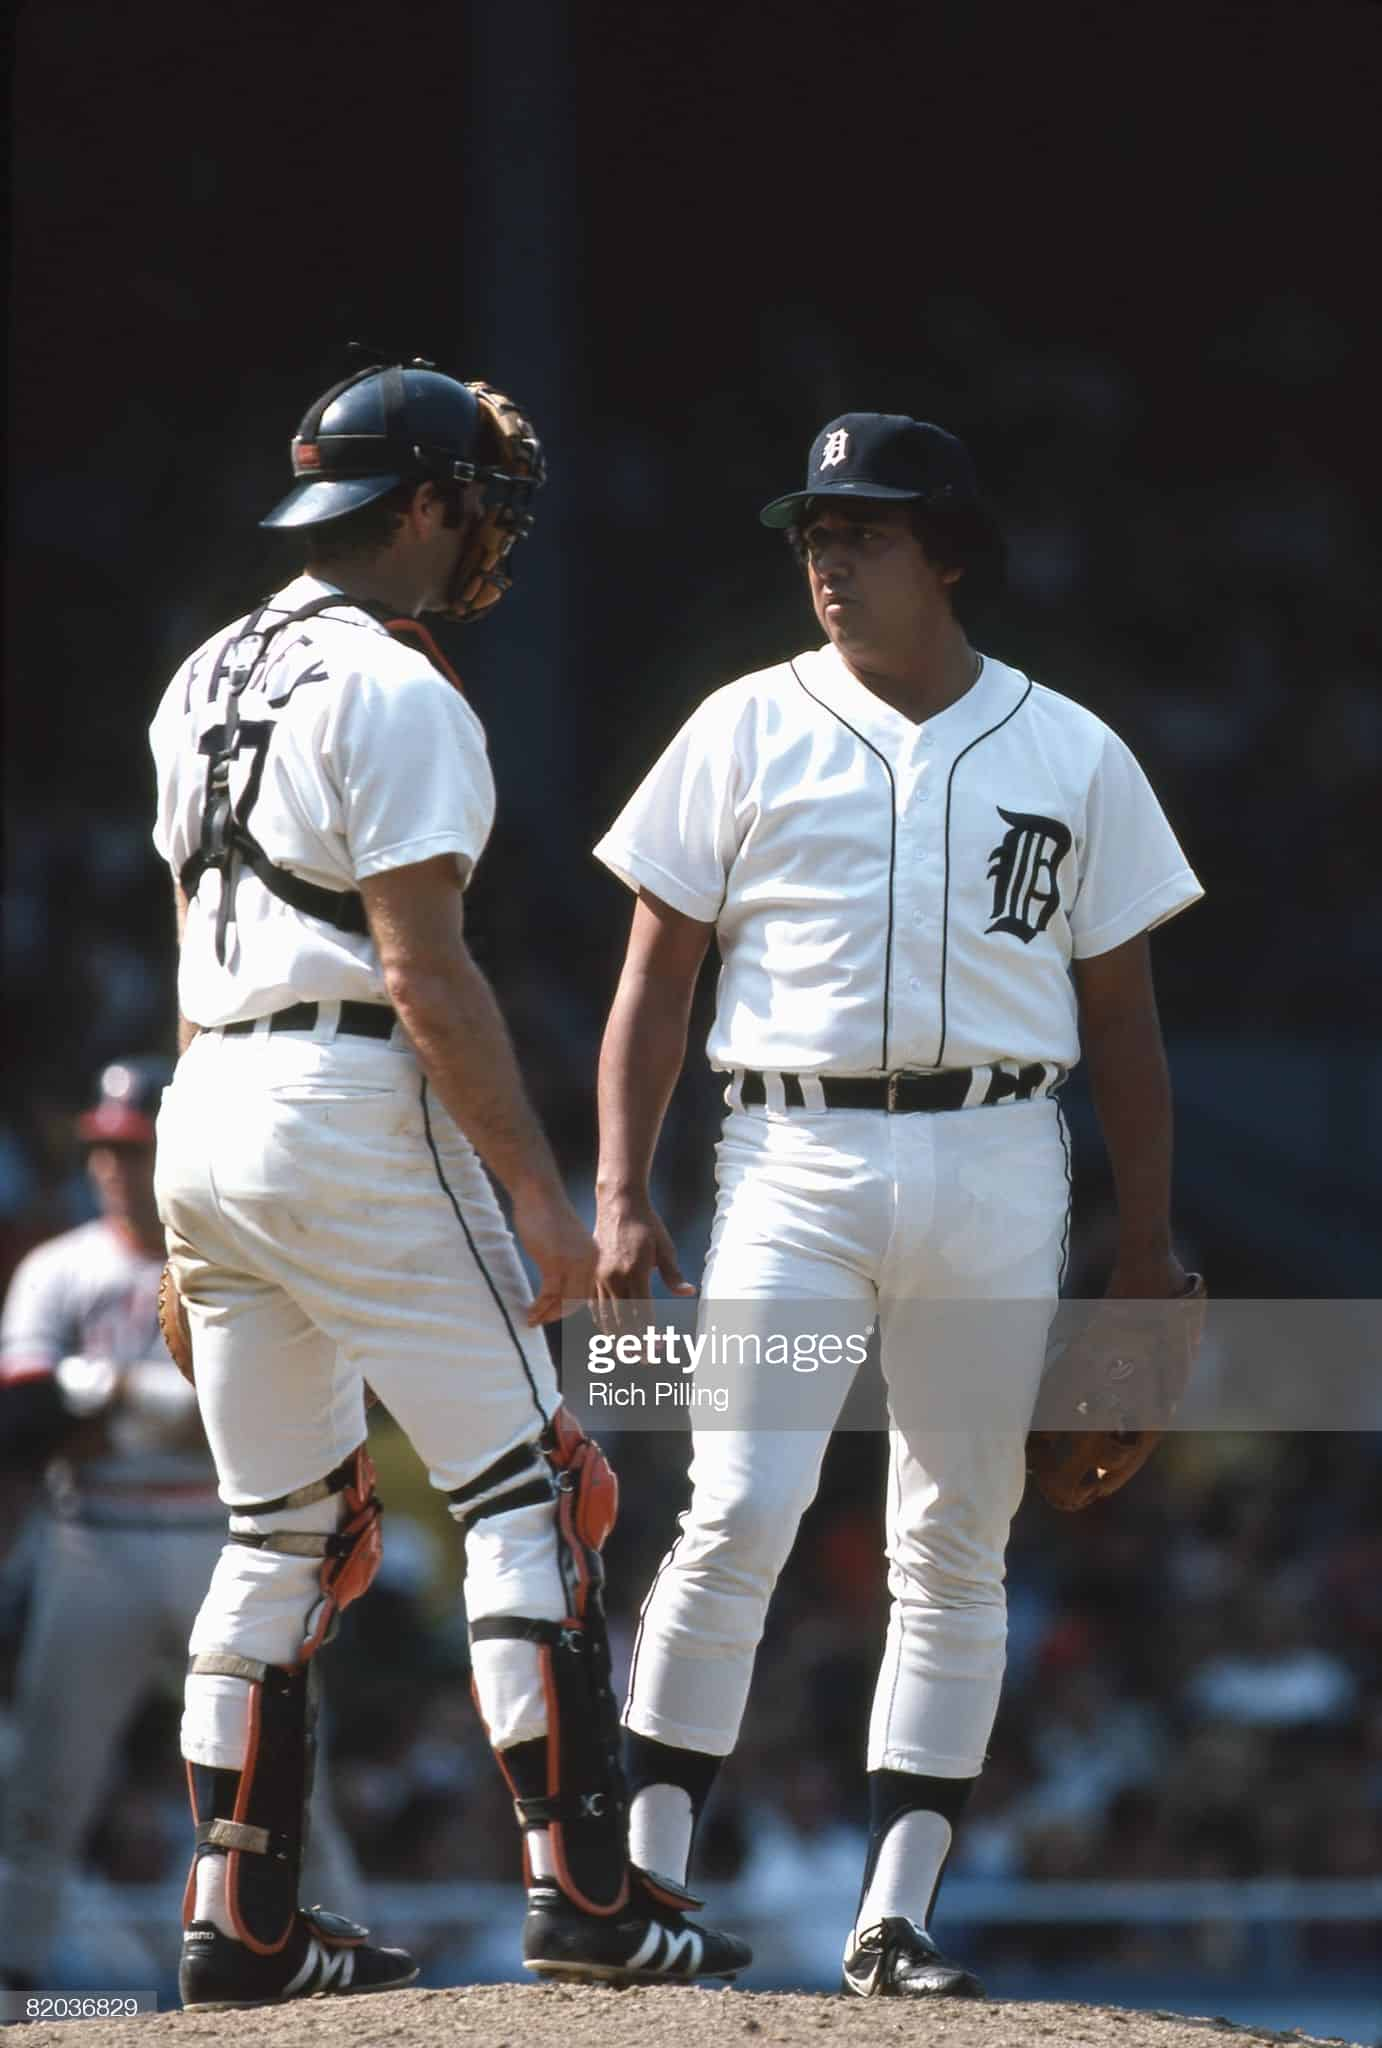 1981 Detroit Tigers meeting at the mound at Tiger Stadium, pitcher and catcher